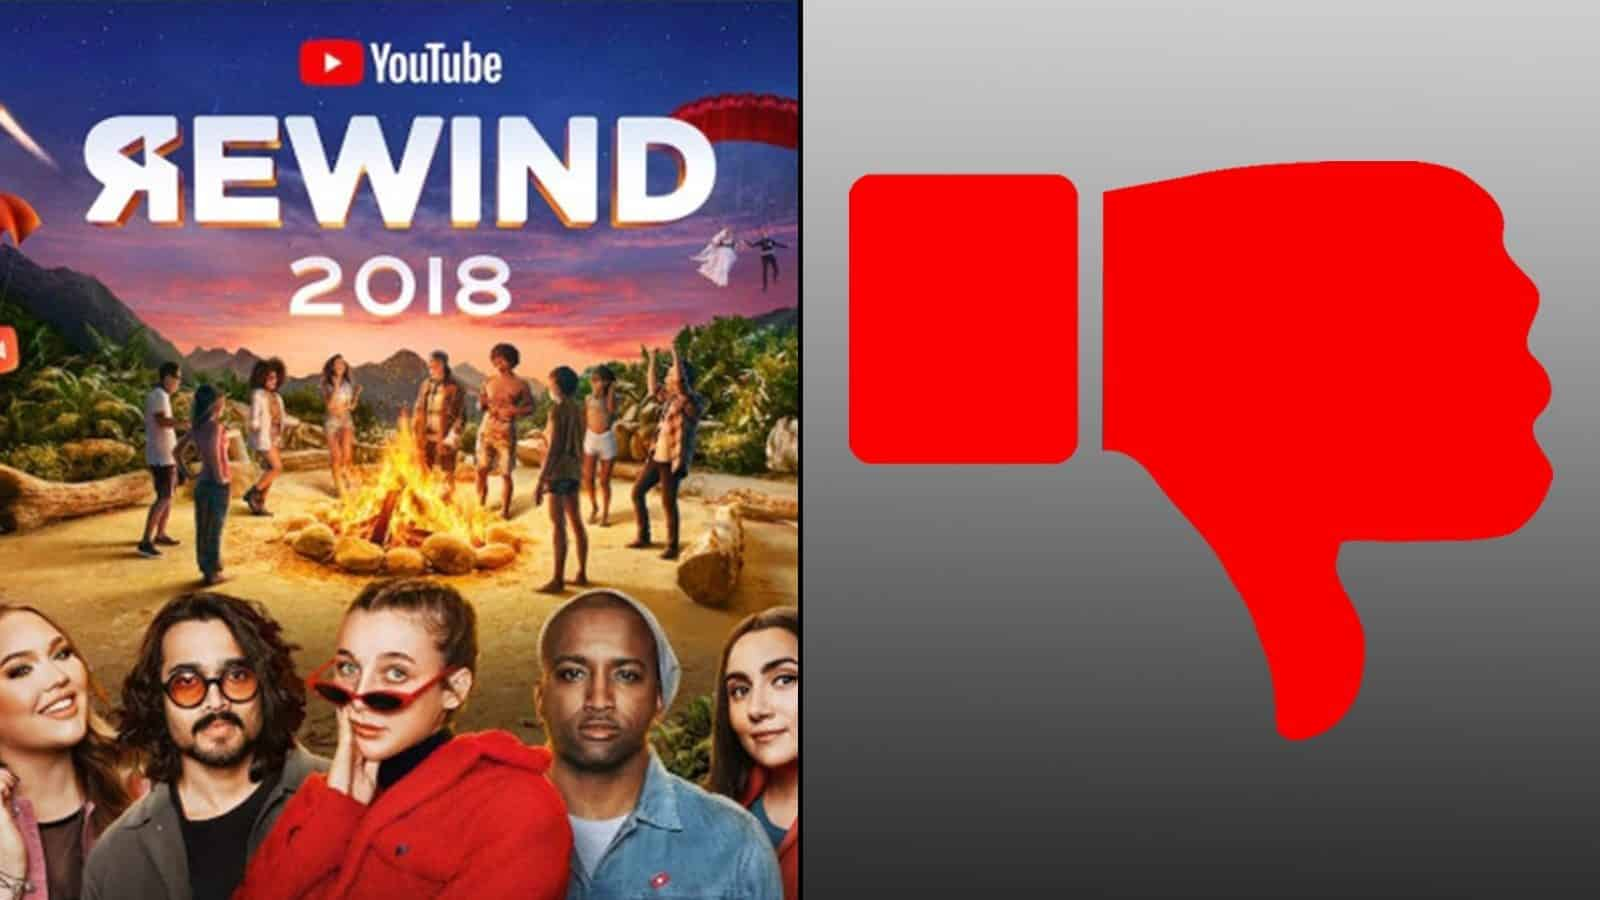 Youtube rewind 2018 1.